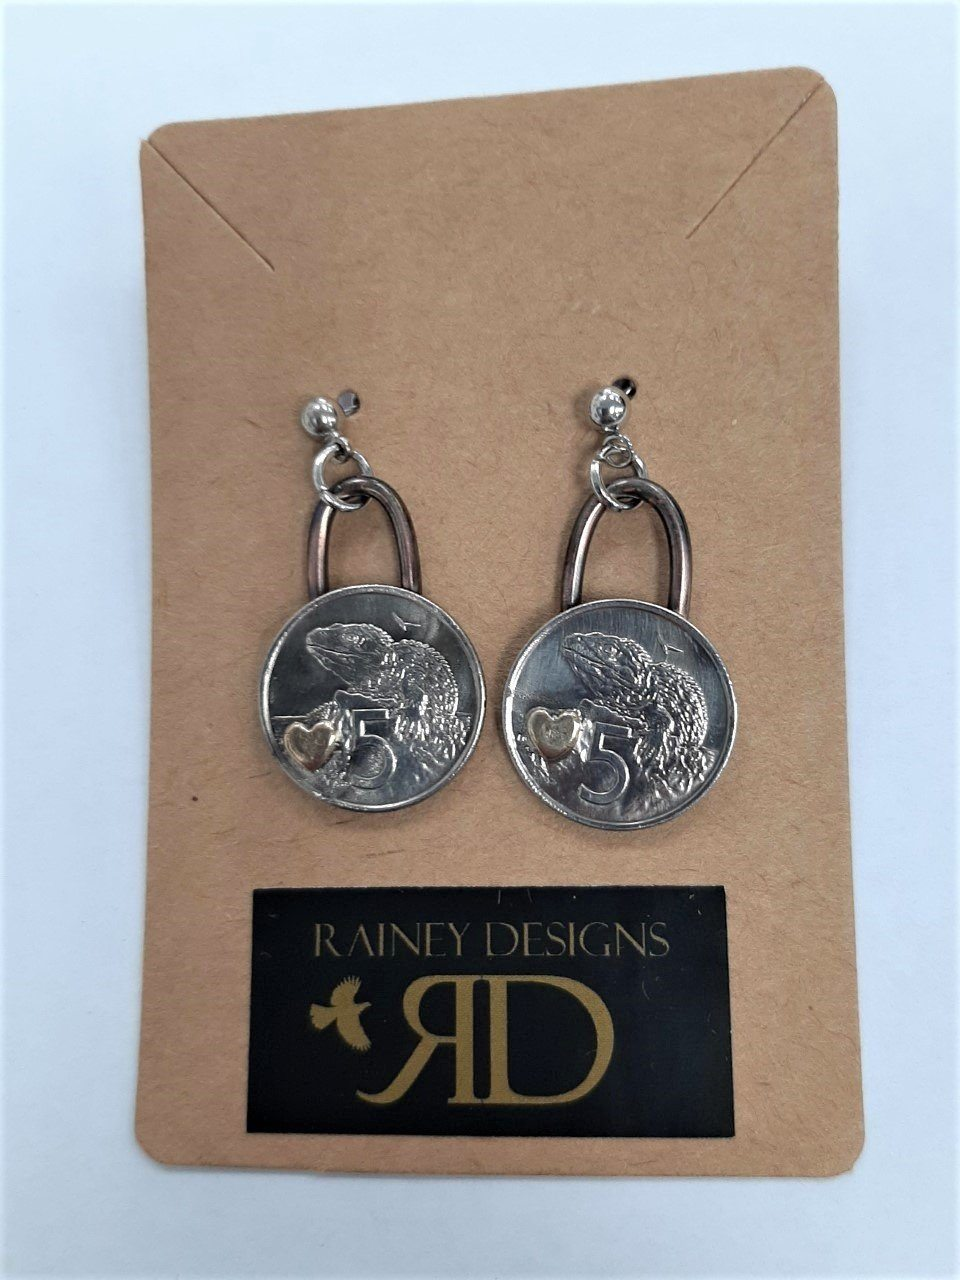 Re-minted Coin Earrings - 5 cents